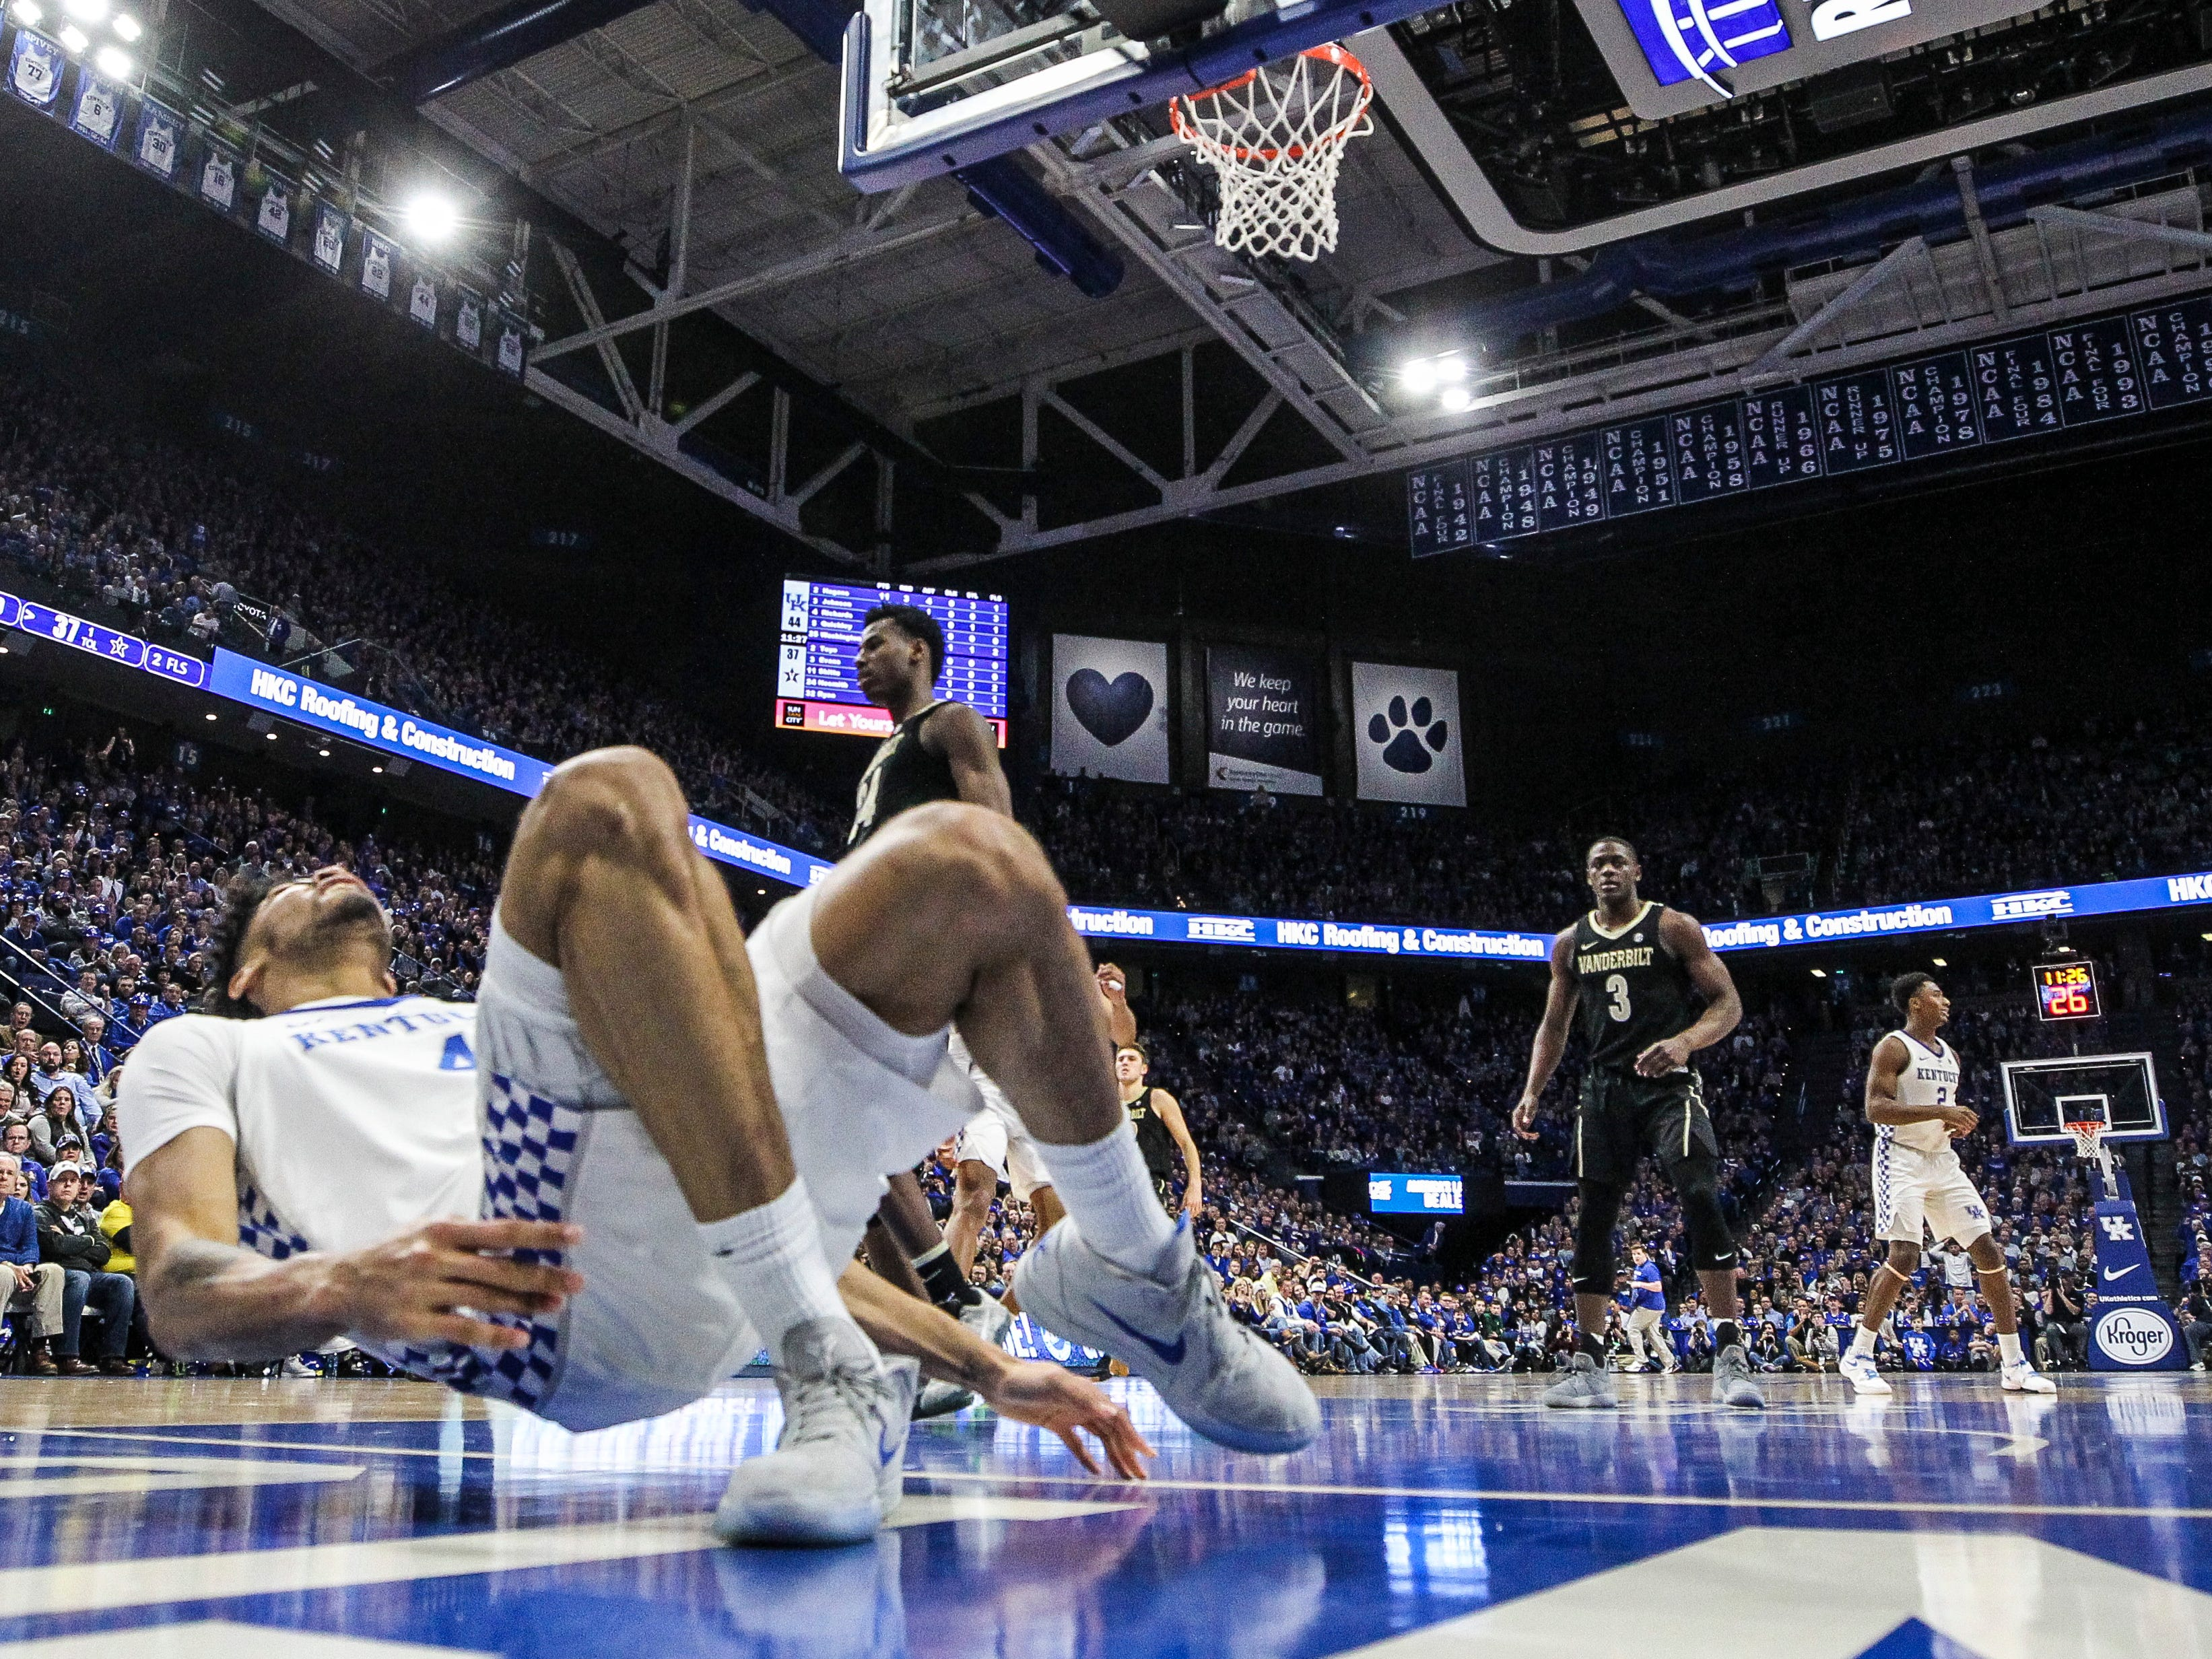 Kentucky's Nick Richards nursed his ankle after landing awkward against Vandy Saturday night at Rupp Arena in Lexington. Richards finished with two points. January 12, 2019